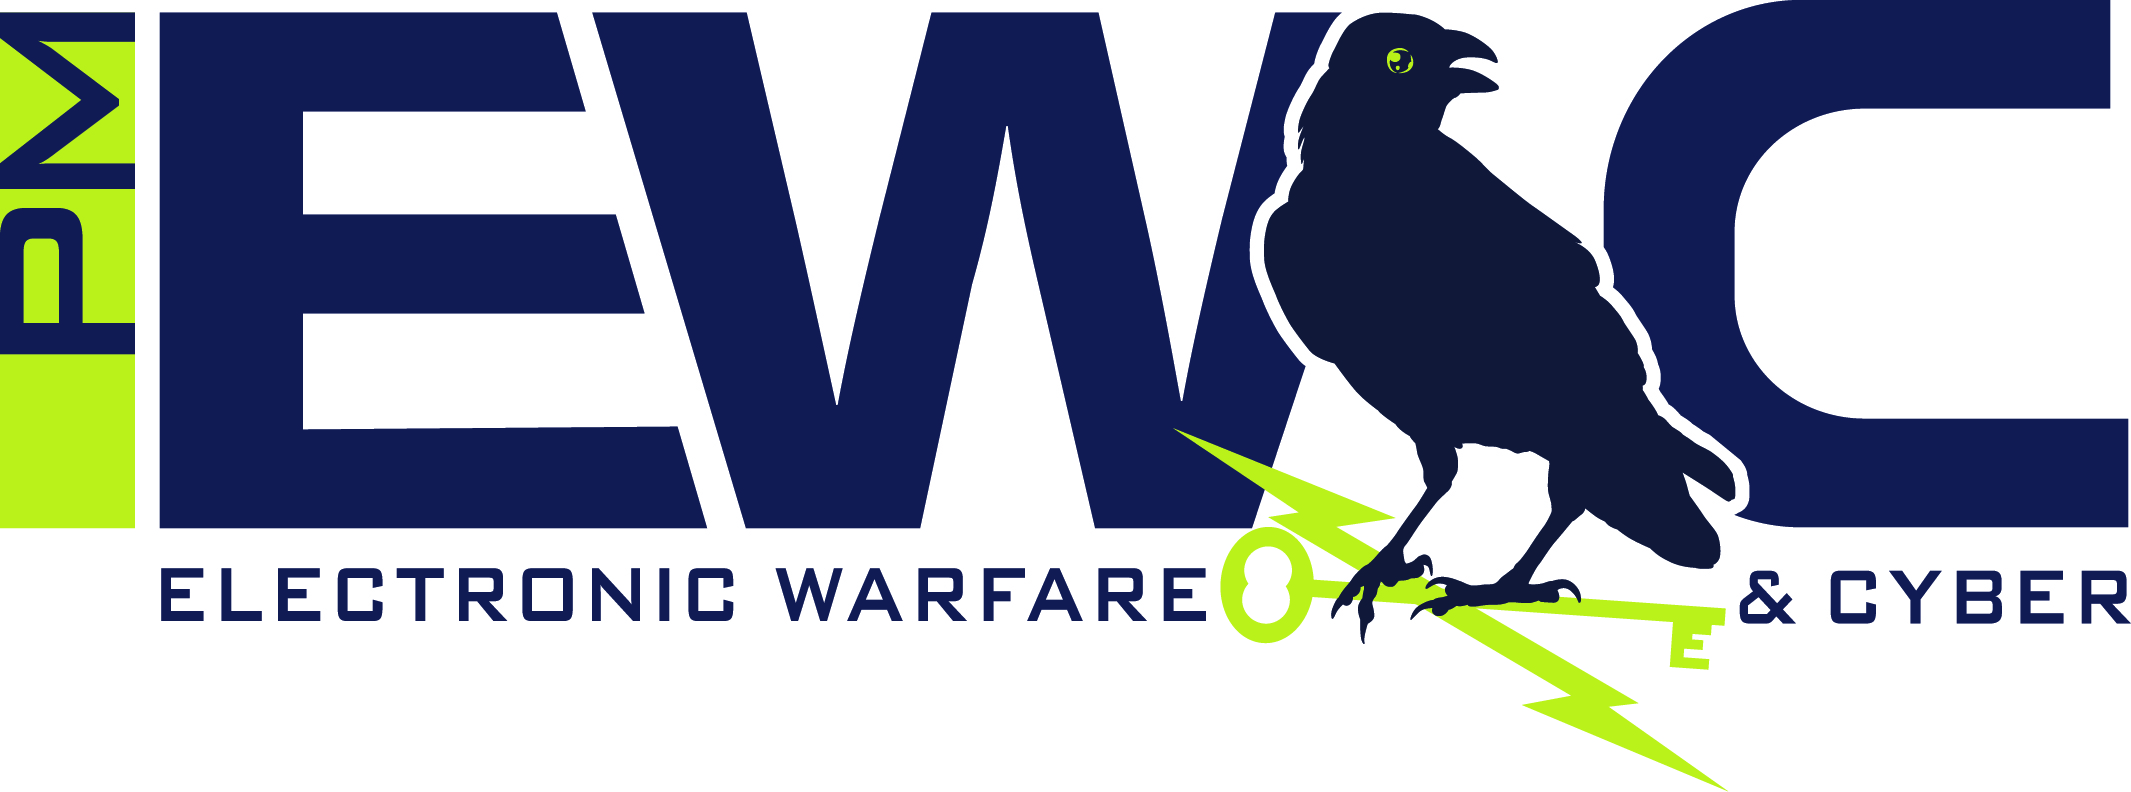 Electronic Warfare and Cyber logo